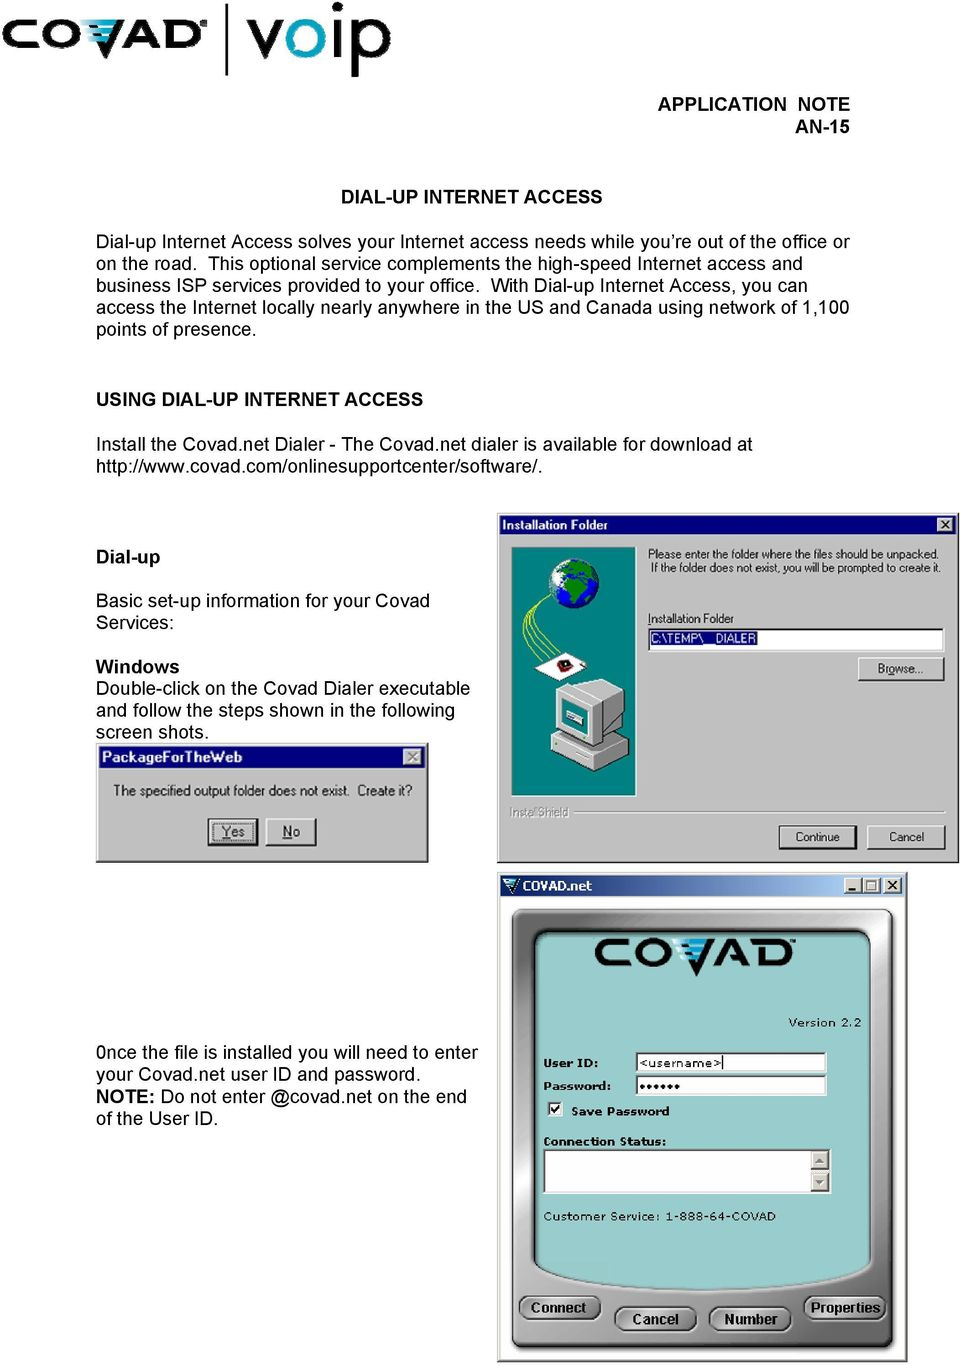 With Dial-up Internet Access, you can access the Internet locally nearly anywhere in the US and Canada using network of 1,100 points of presence. USING DIAL-UP INTERNET ACCESS Install the Covad.